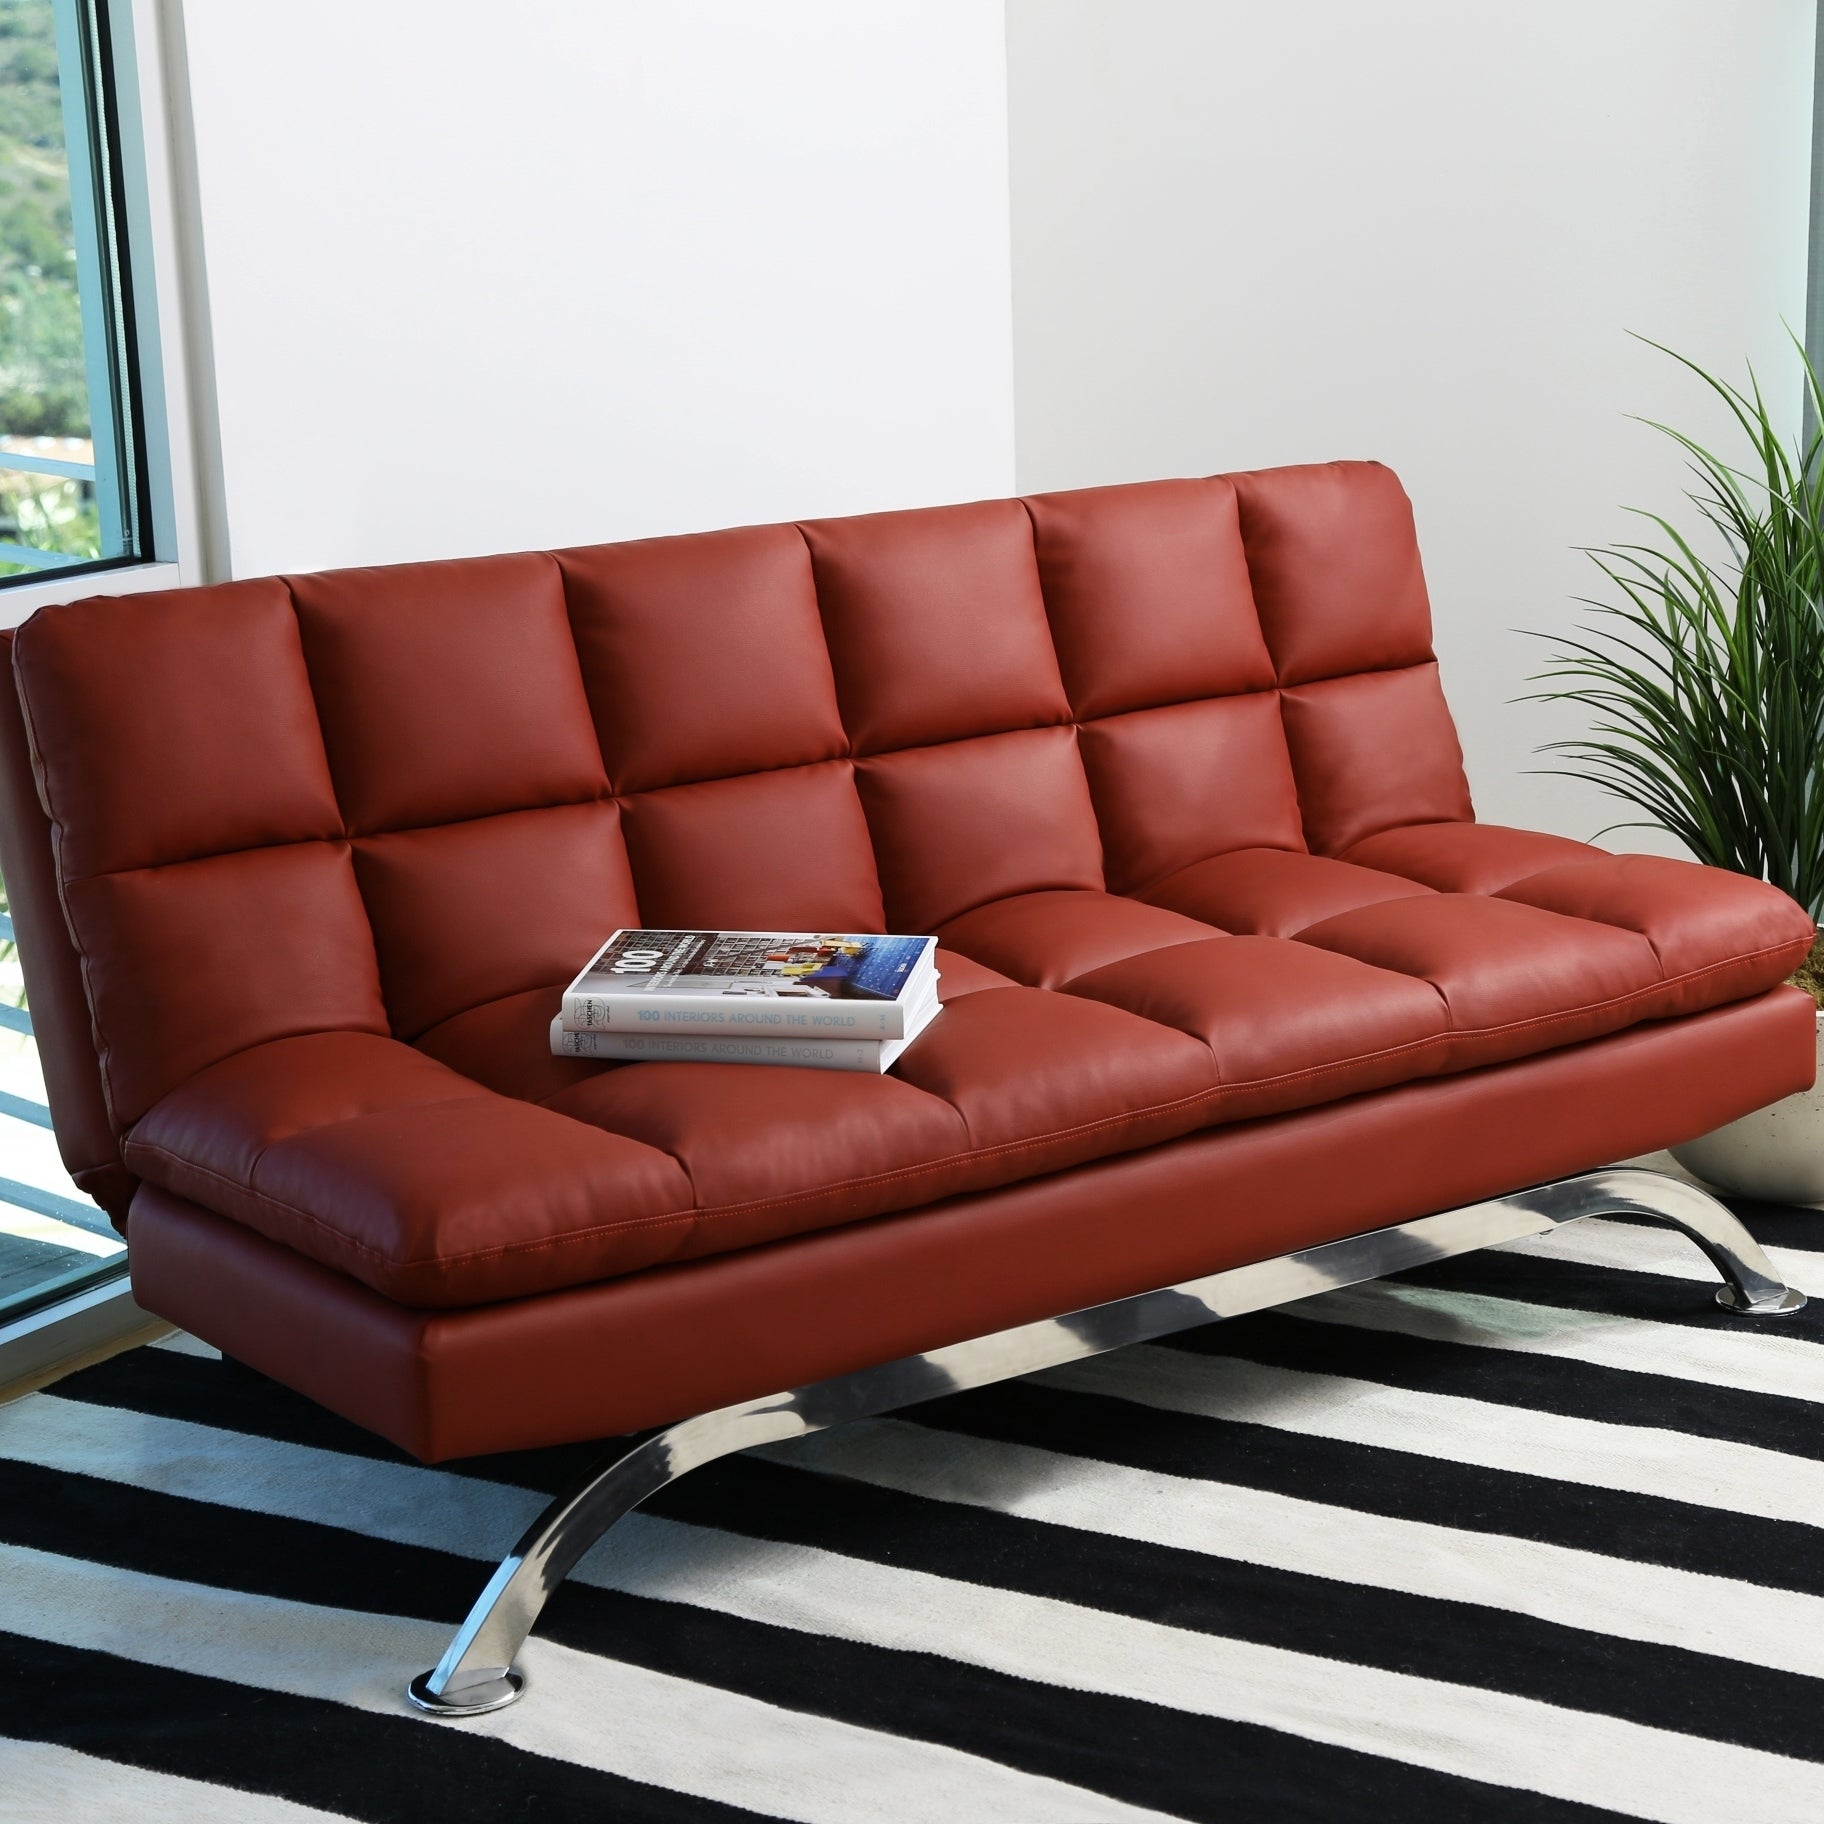 Abbyson Vienna Bonded Leather Euro Futon Sofa On Free Shipping Today Com 9661621